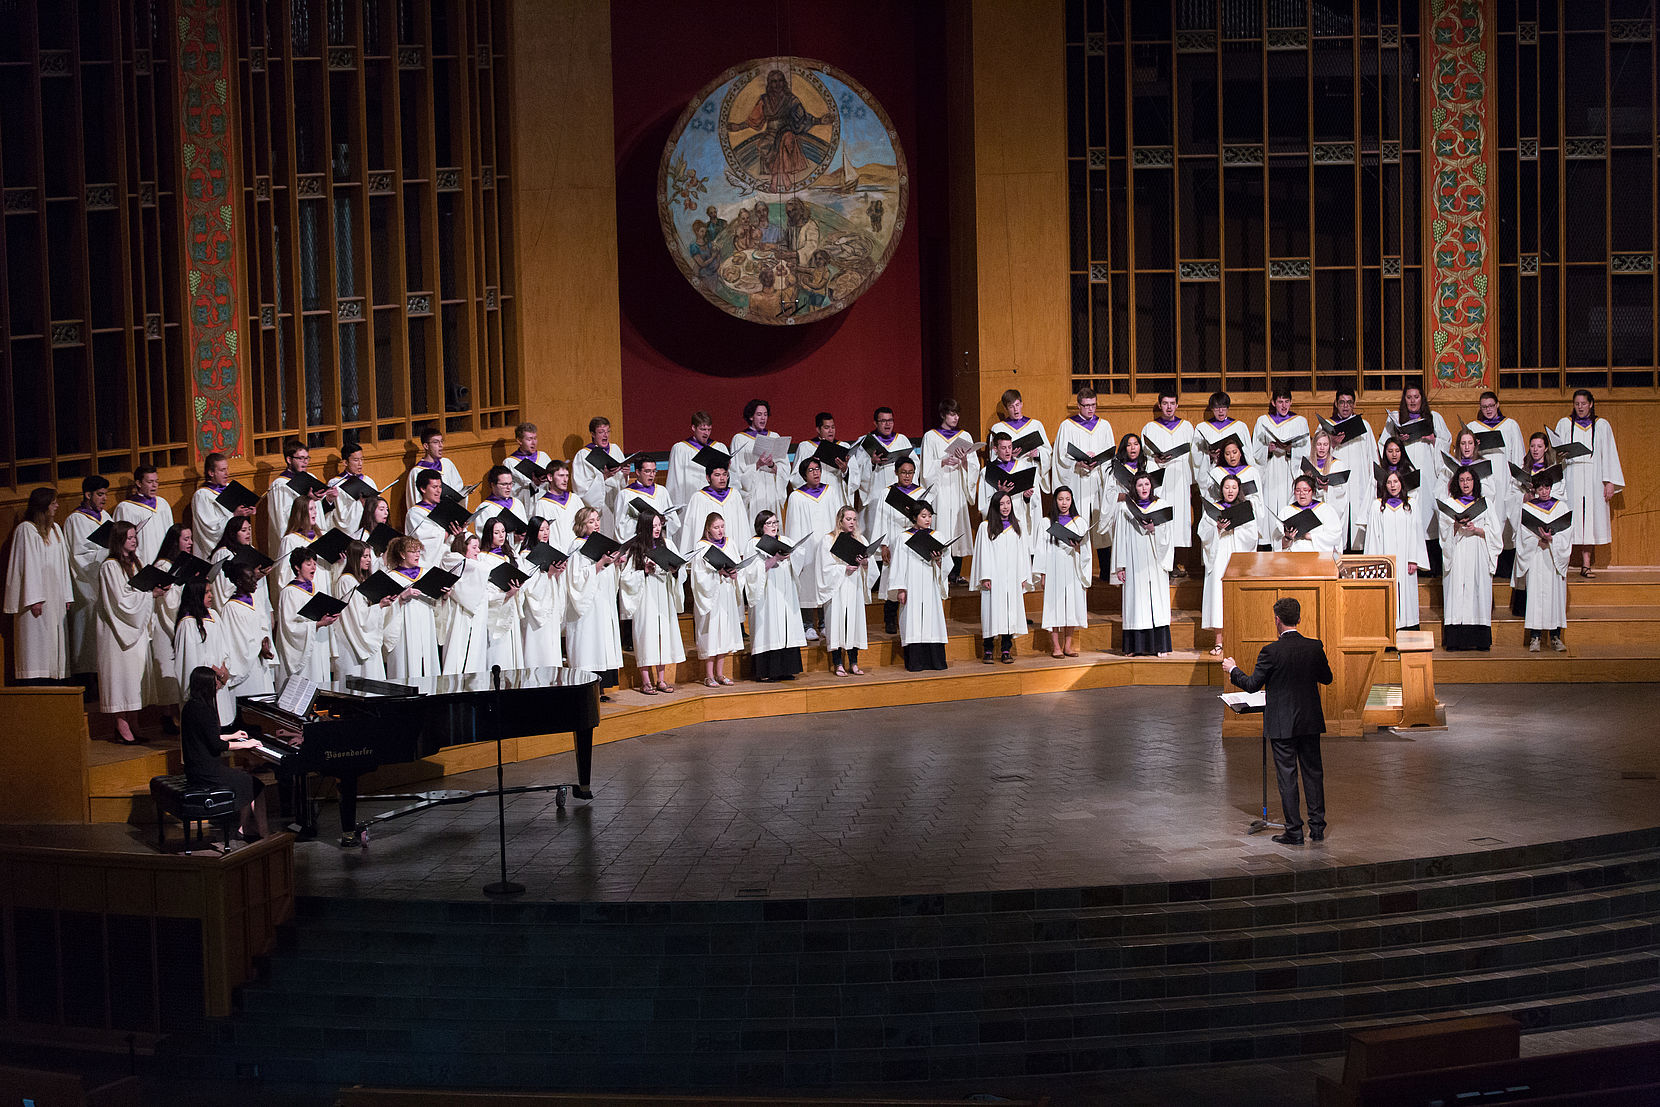 The Walla Walla University University Singers choir singing on stage at the University Church